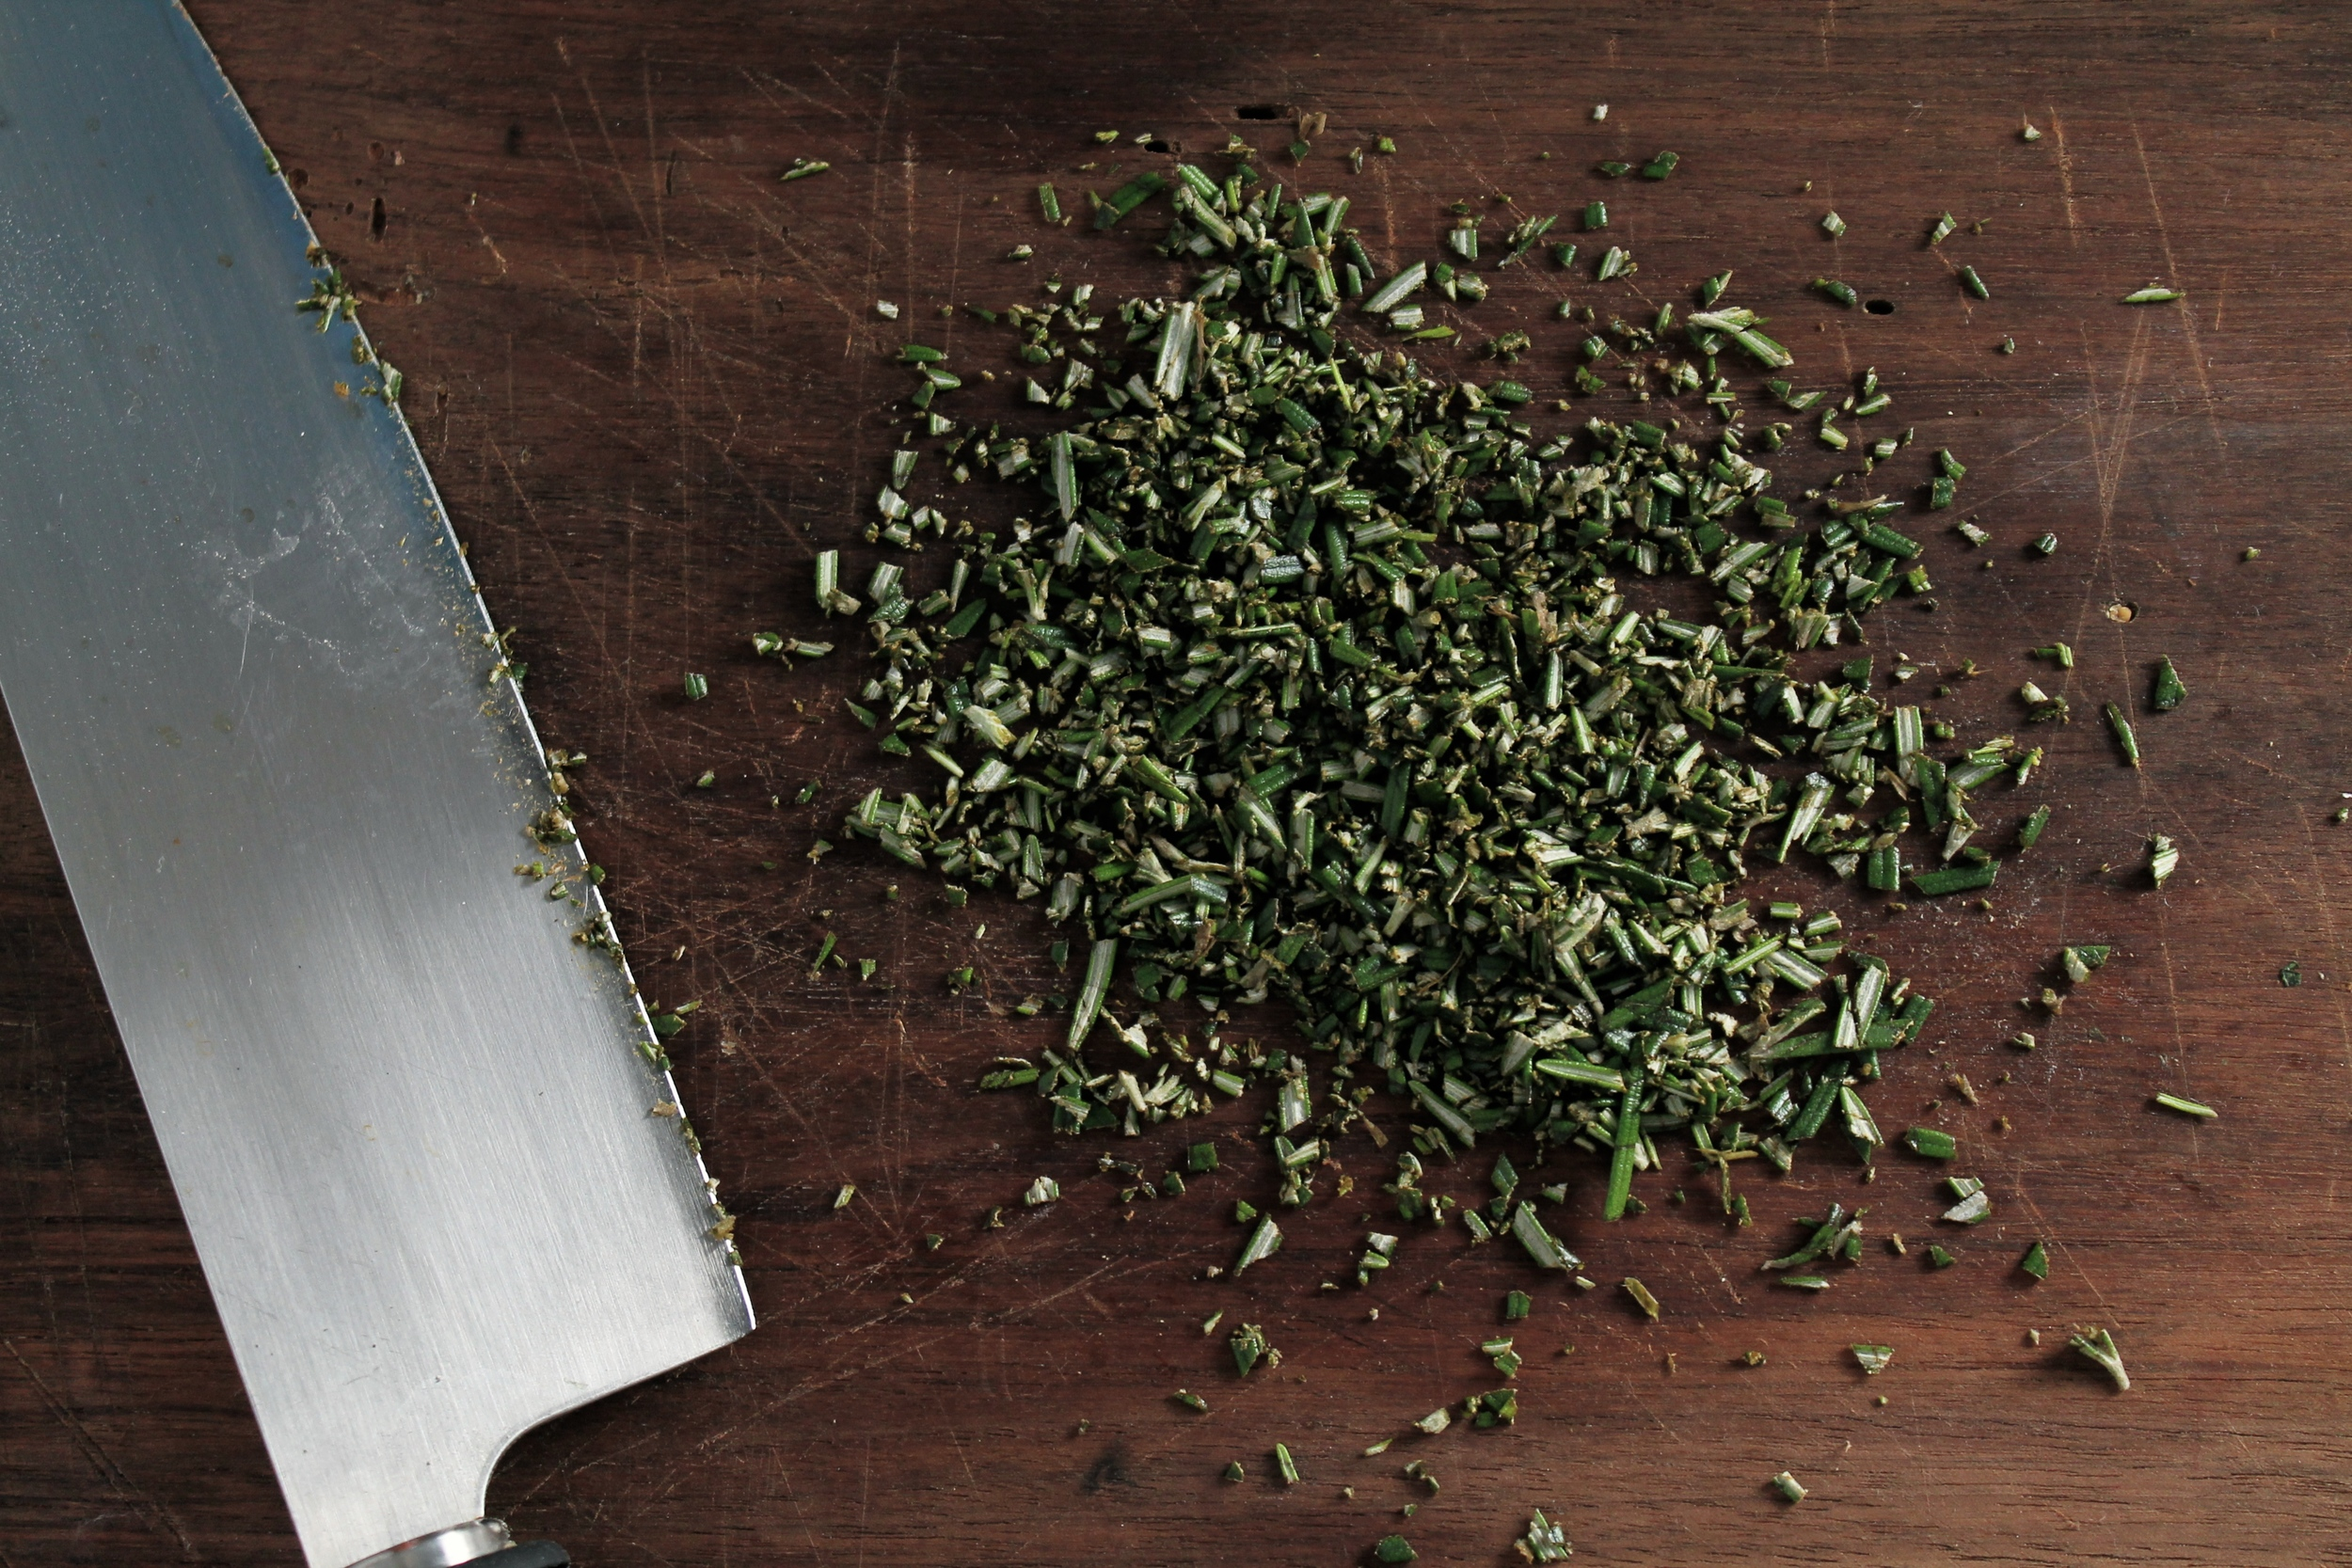 Chopped Rosemary | www.hungryinlove.com